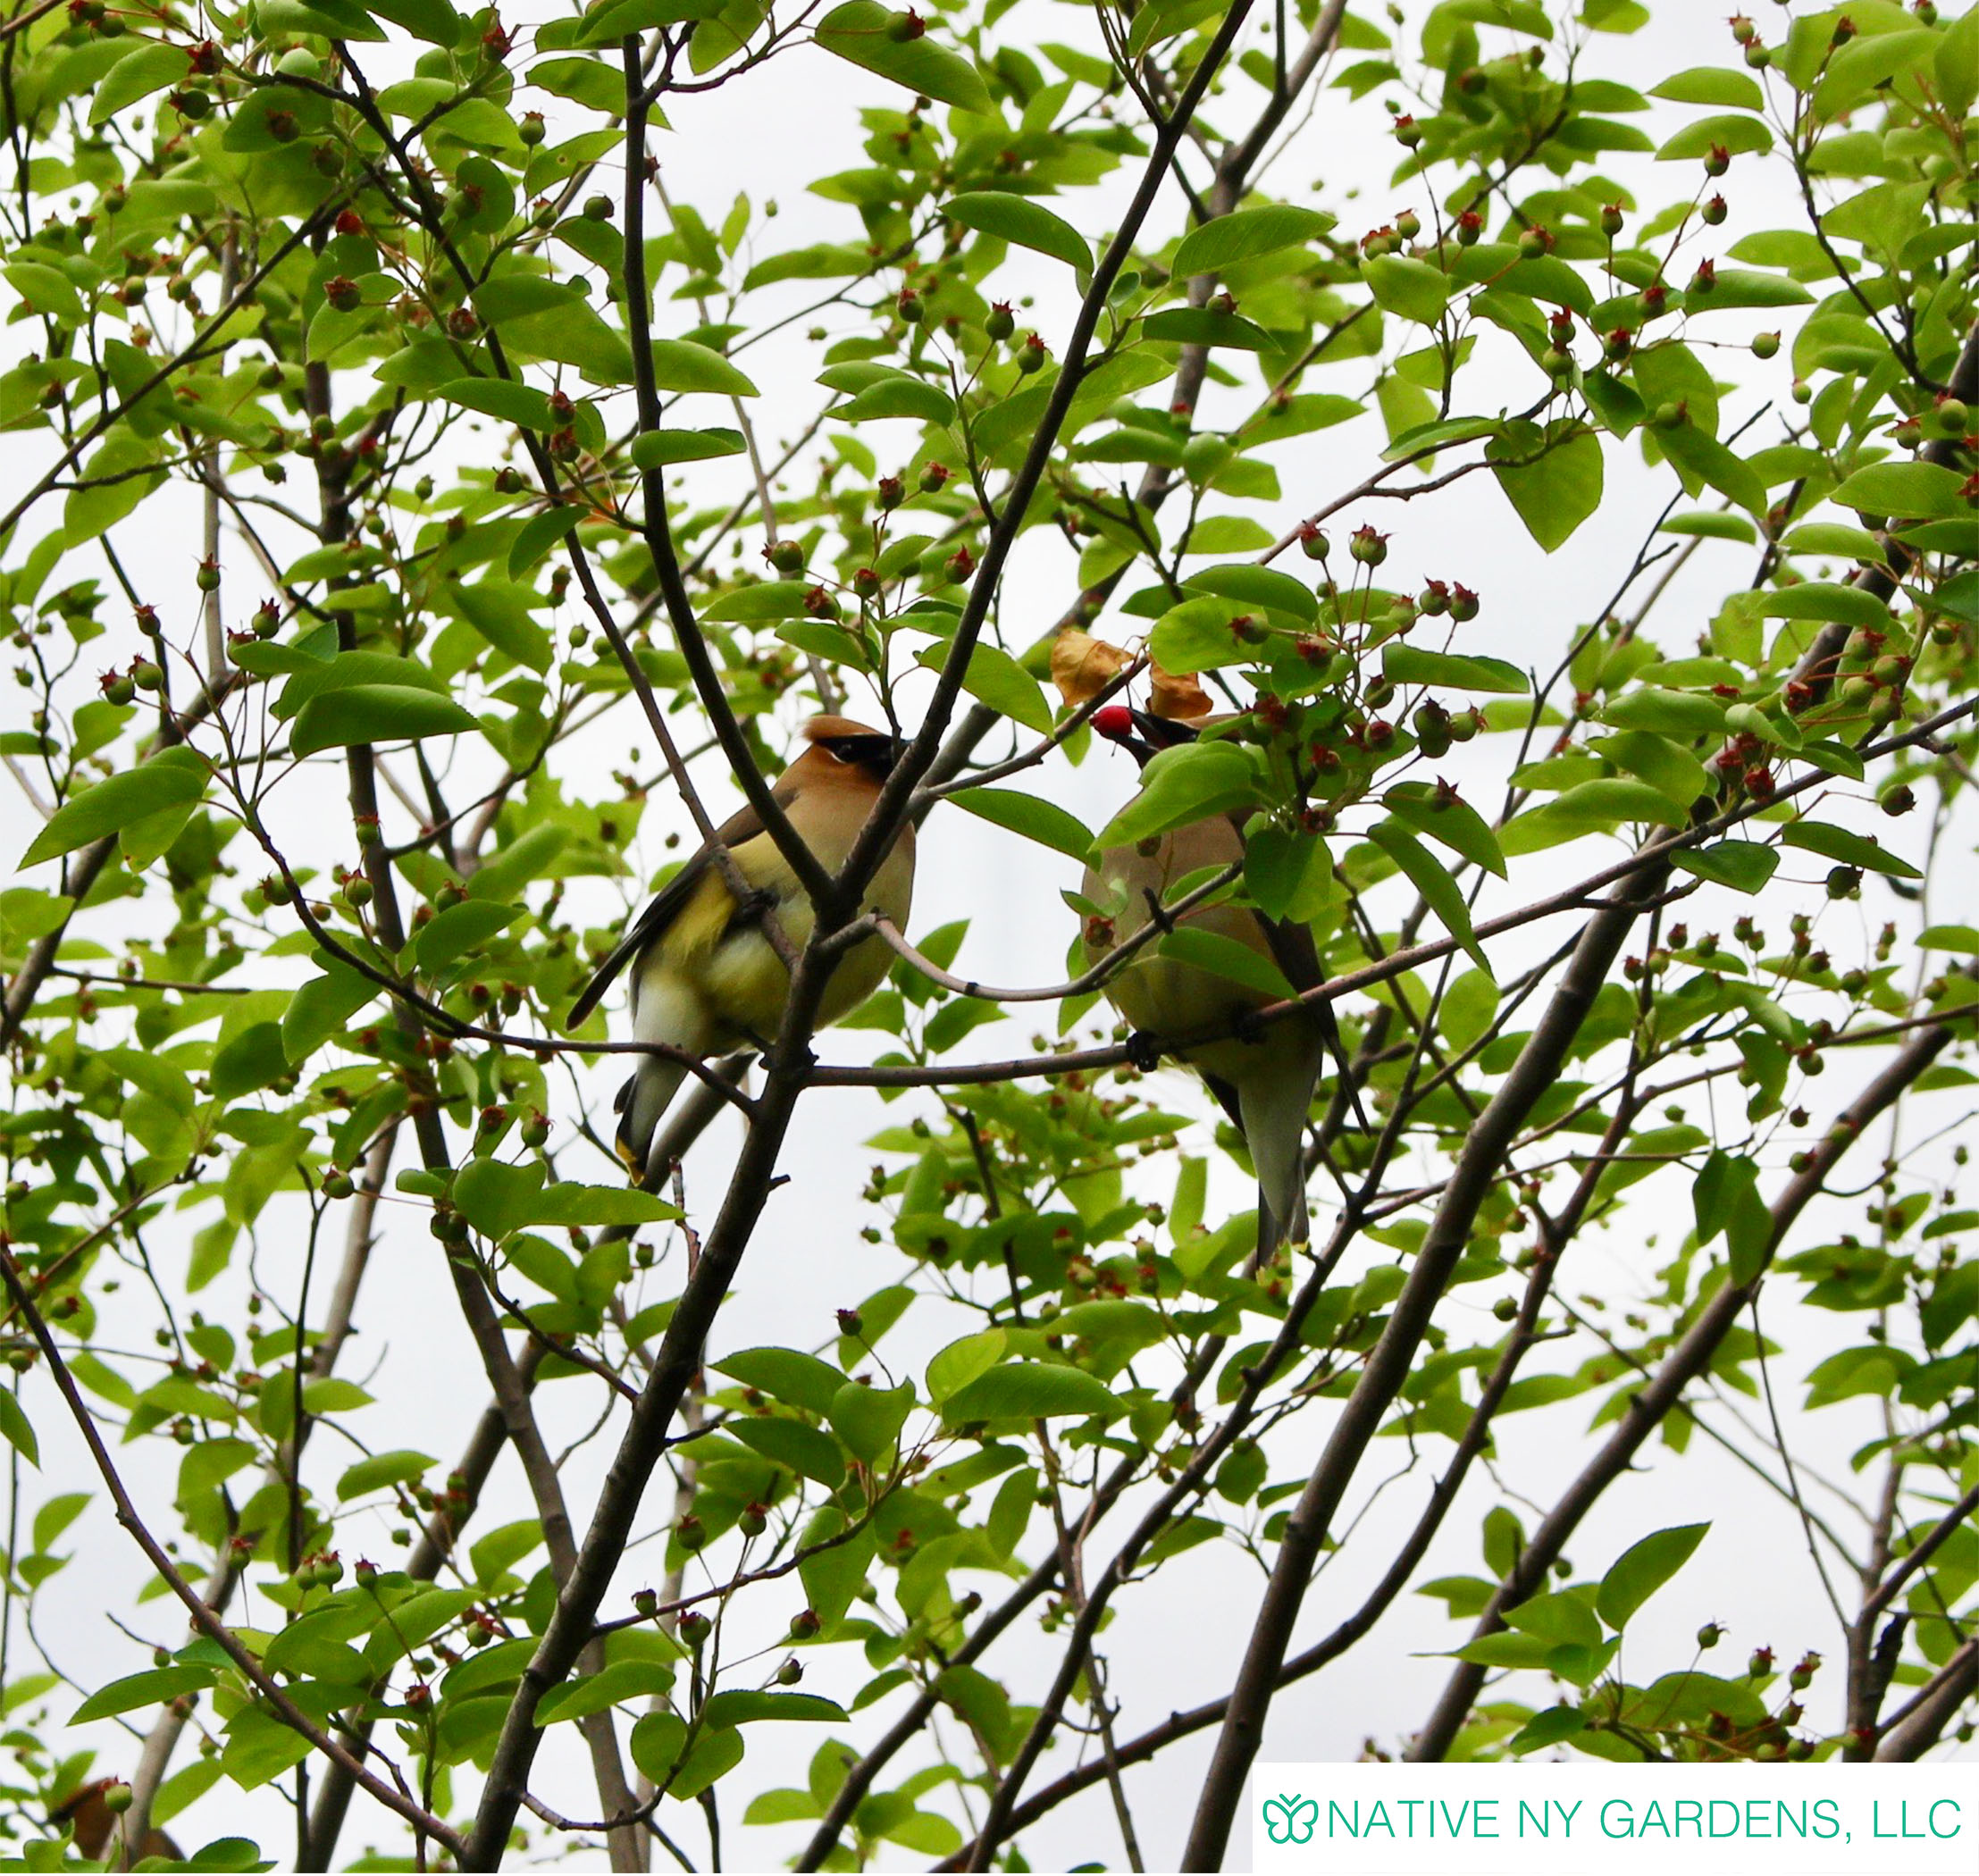 Photo by: Mackenzie Younger 'Cedar Wax Wings eating Amelanchier berries'